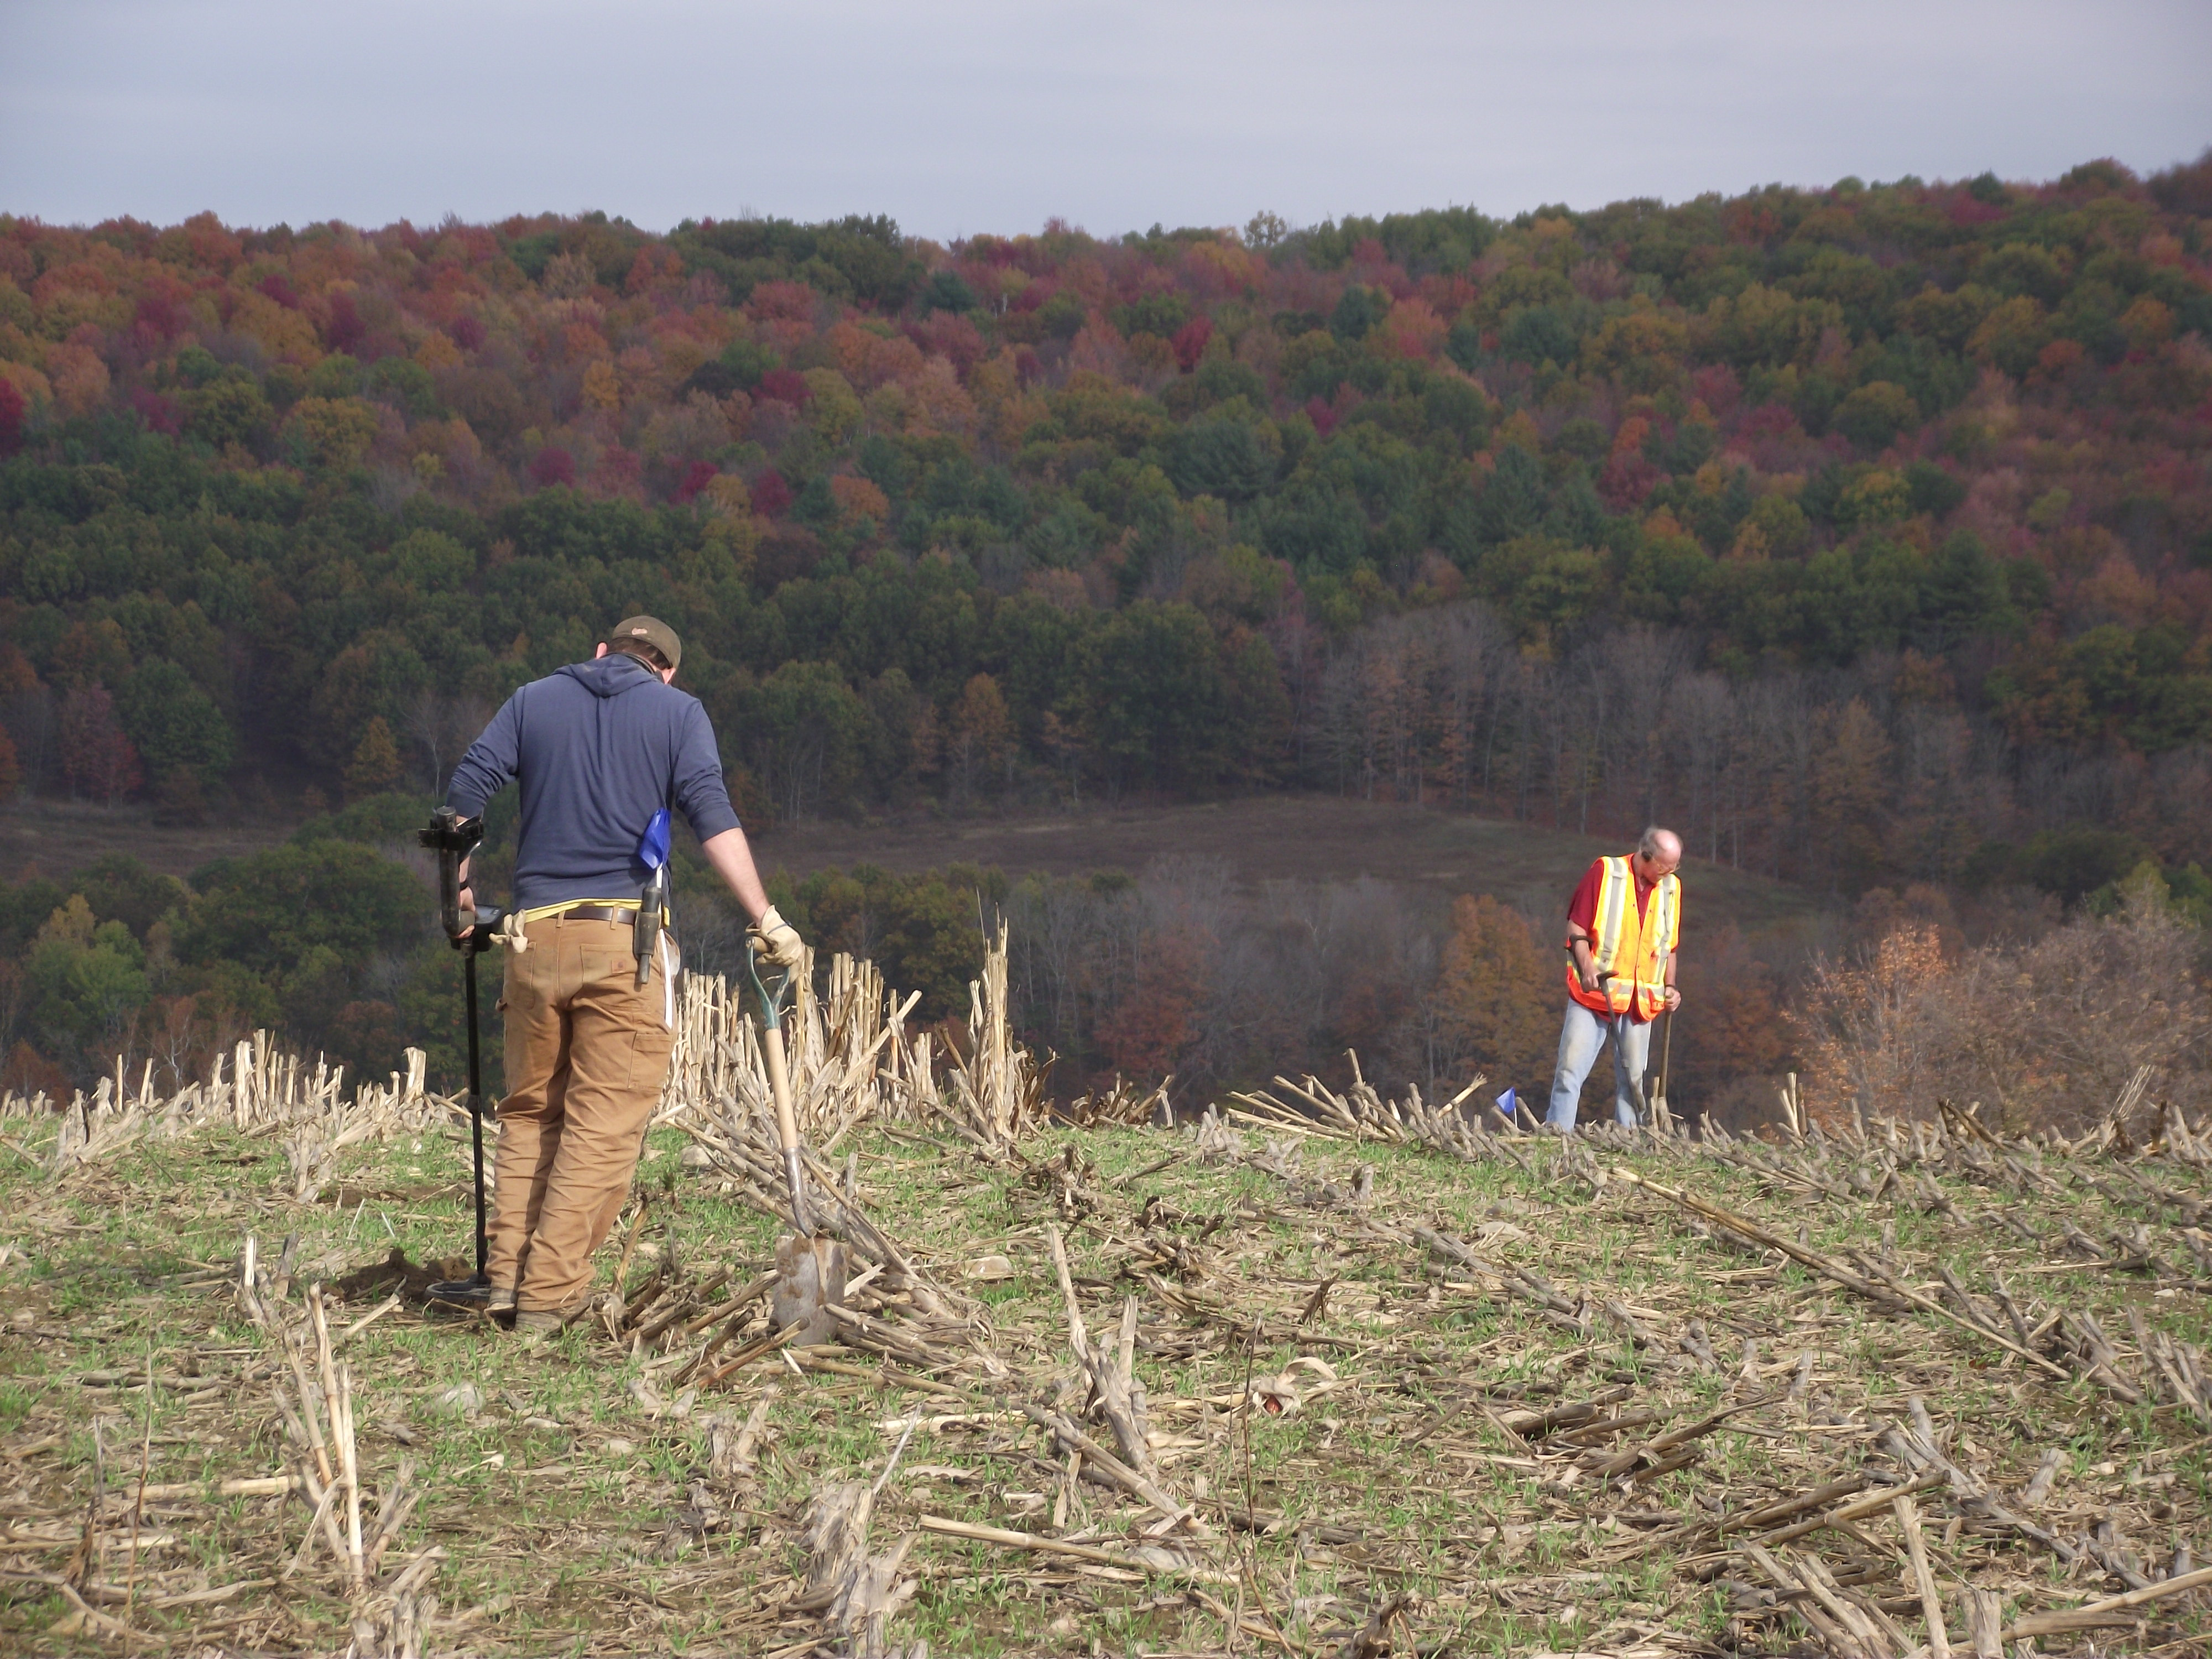 CHG workers examining a field